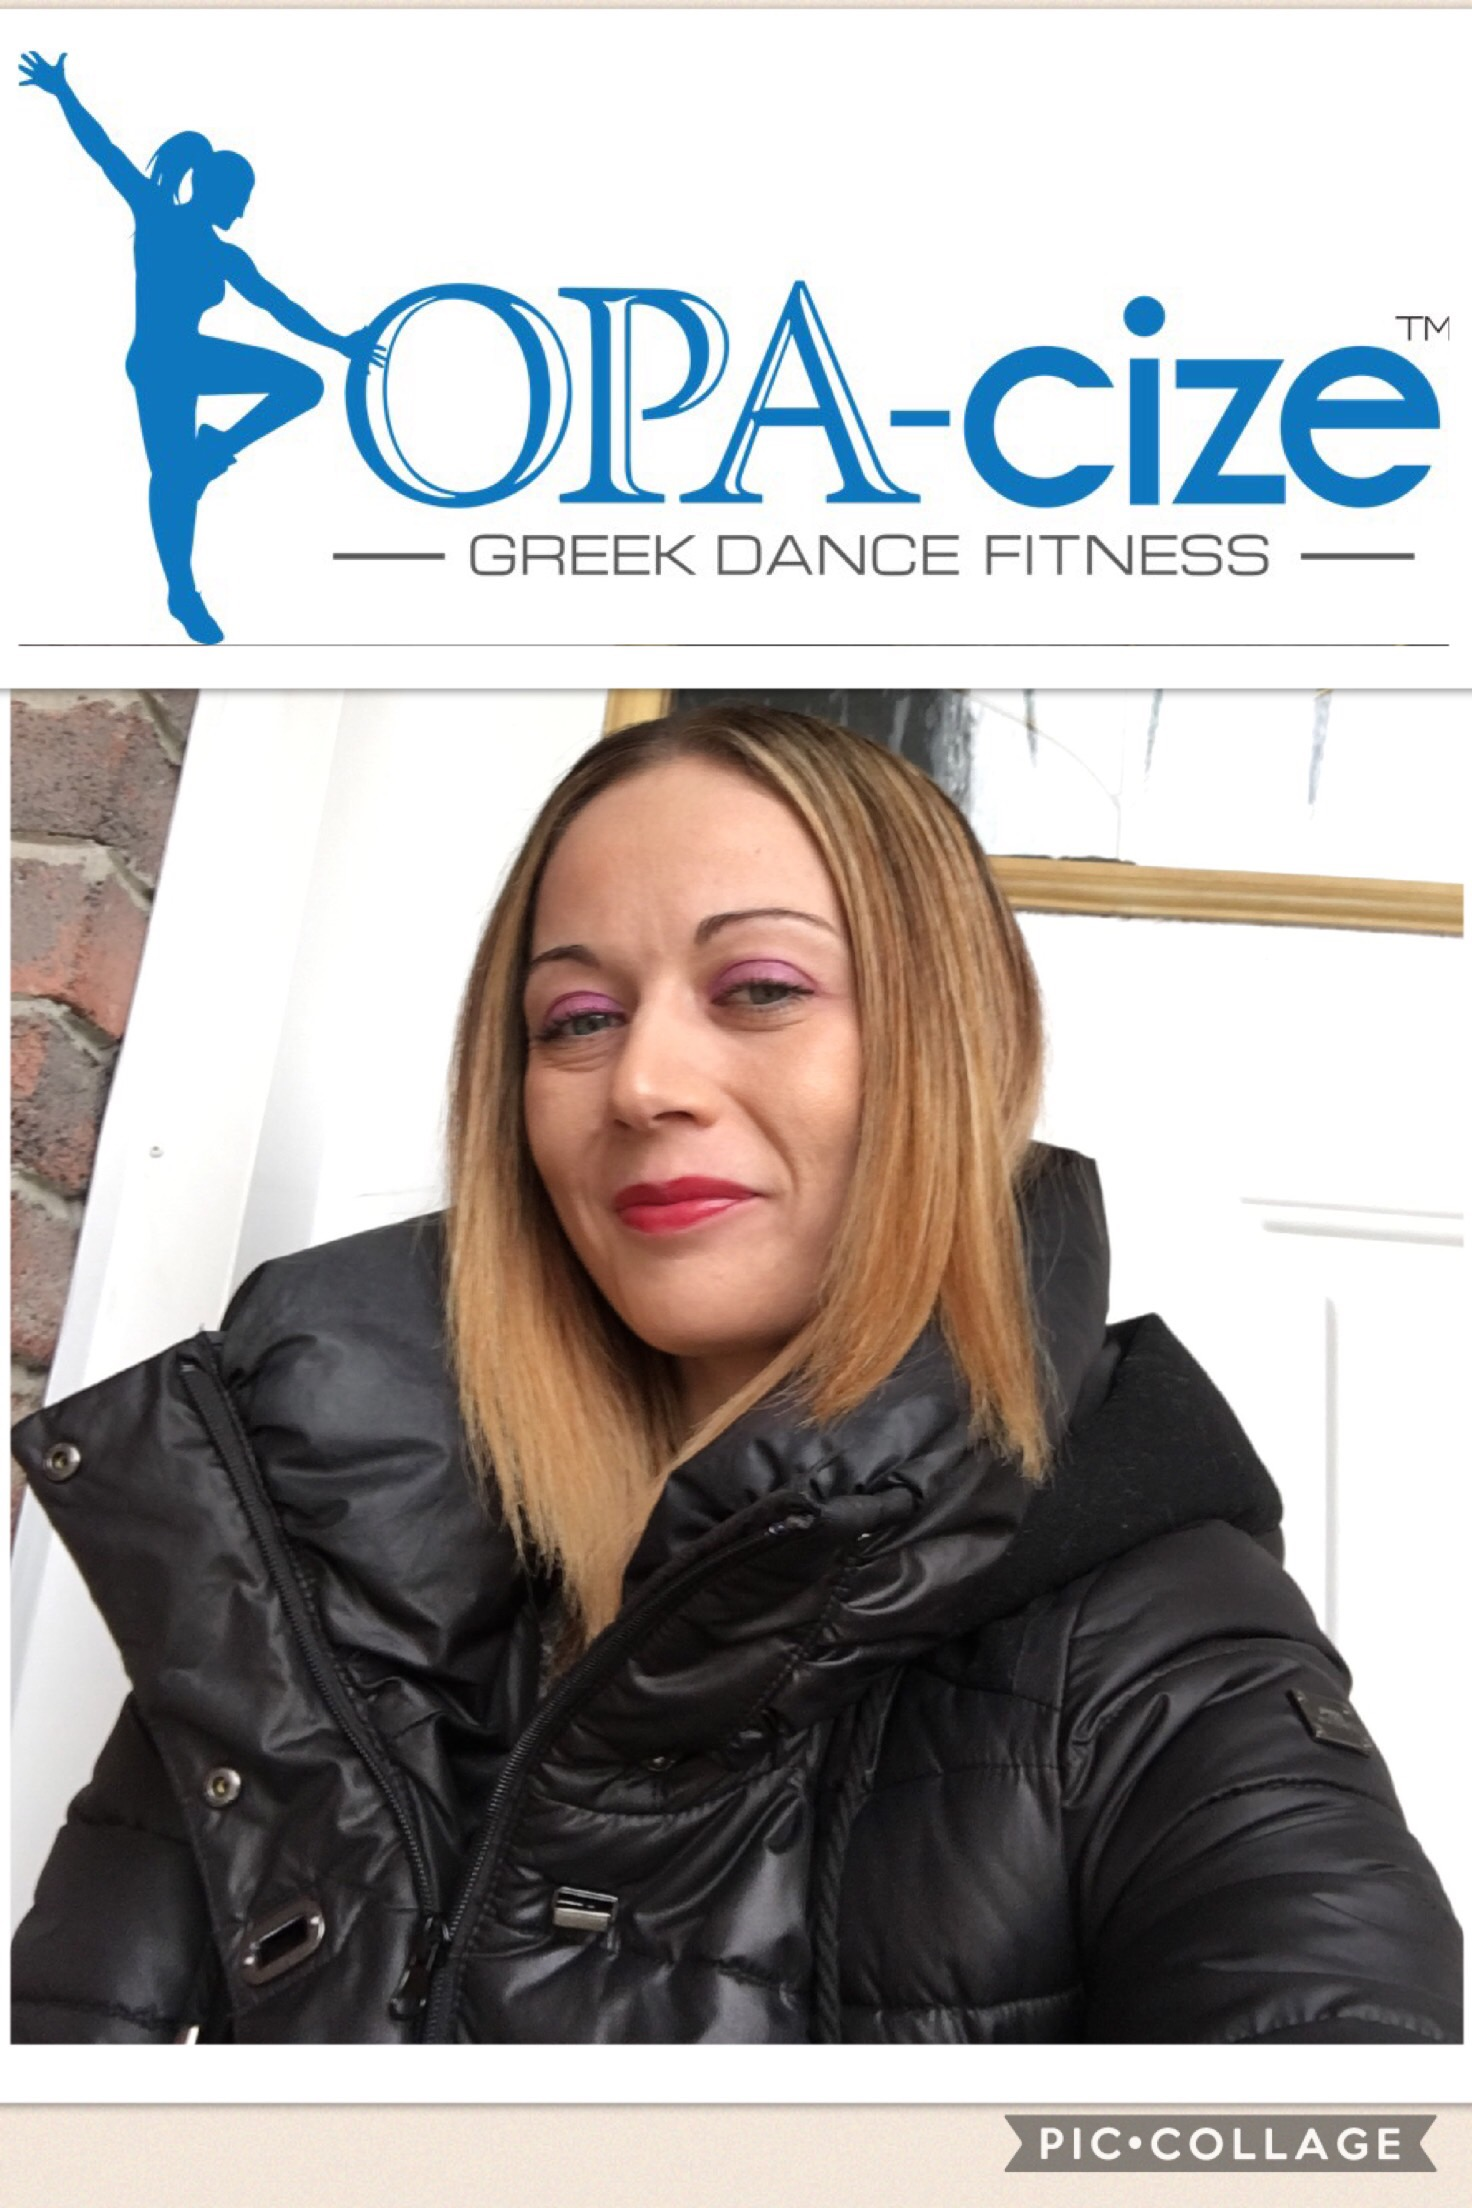 OPACIZE® Etobicoke, ON with Julie Mondays